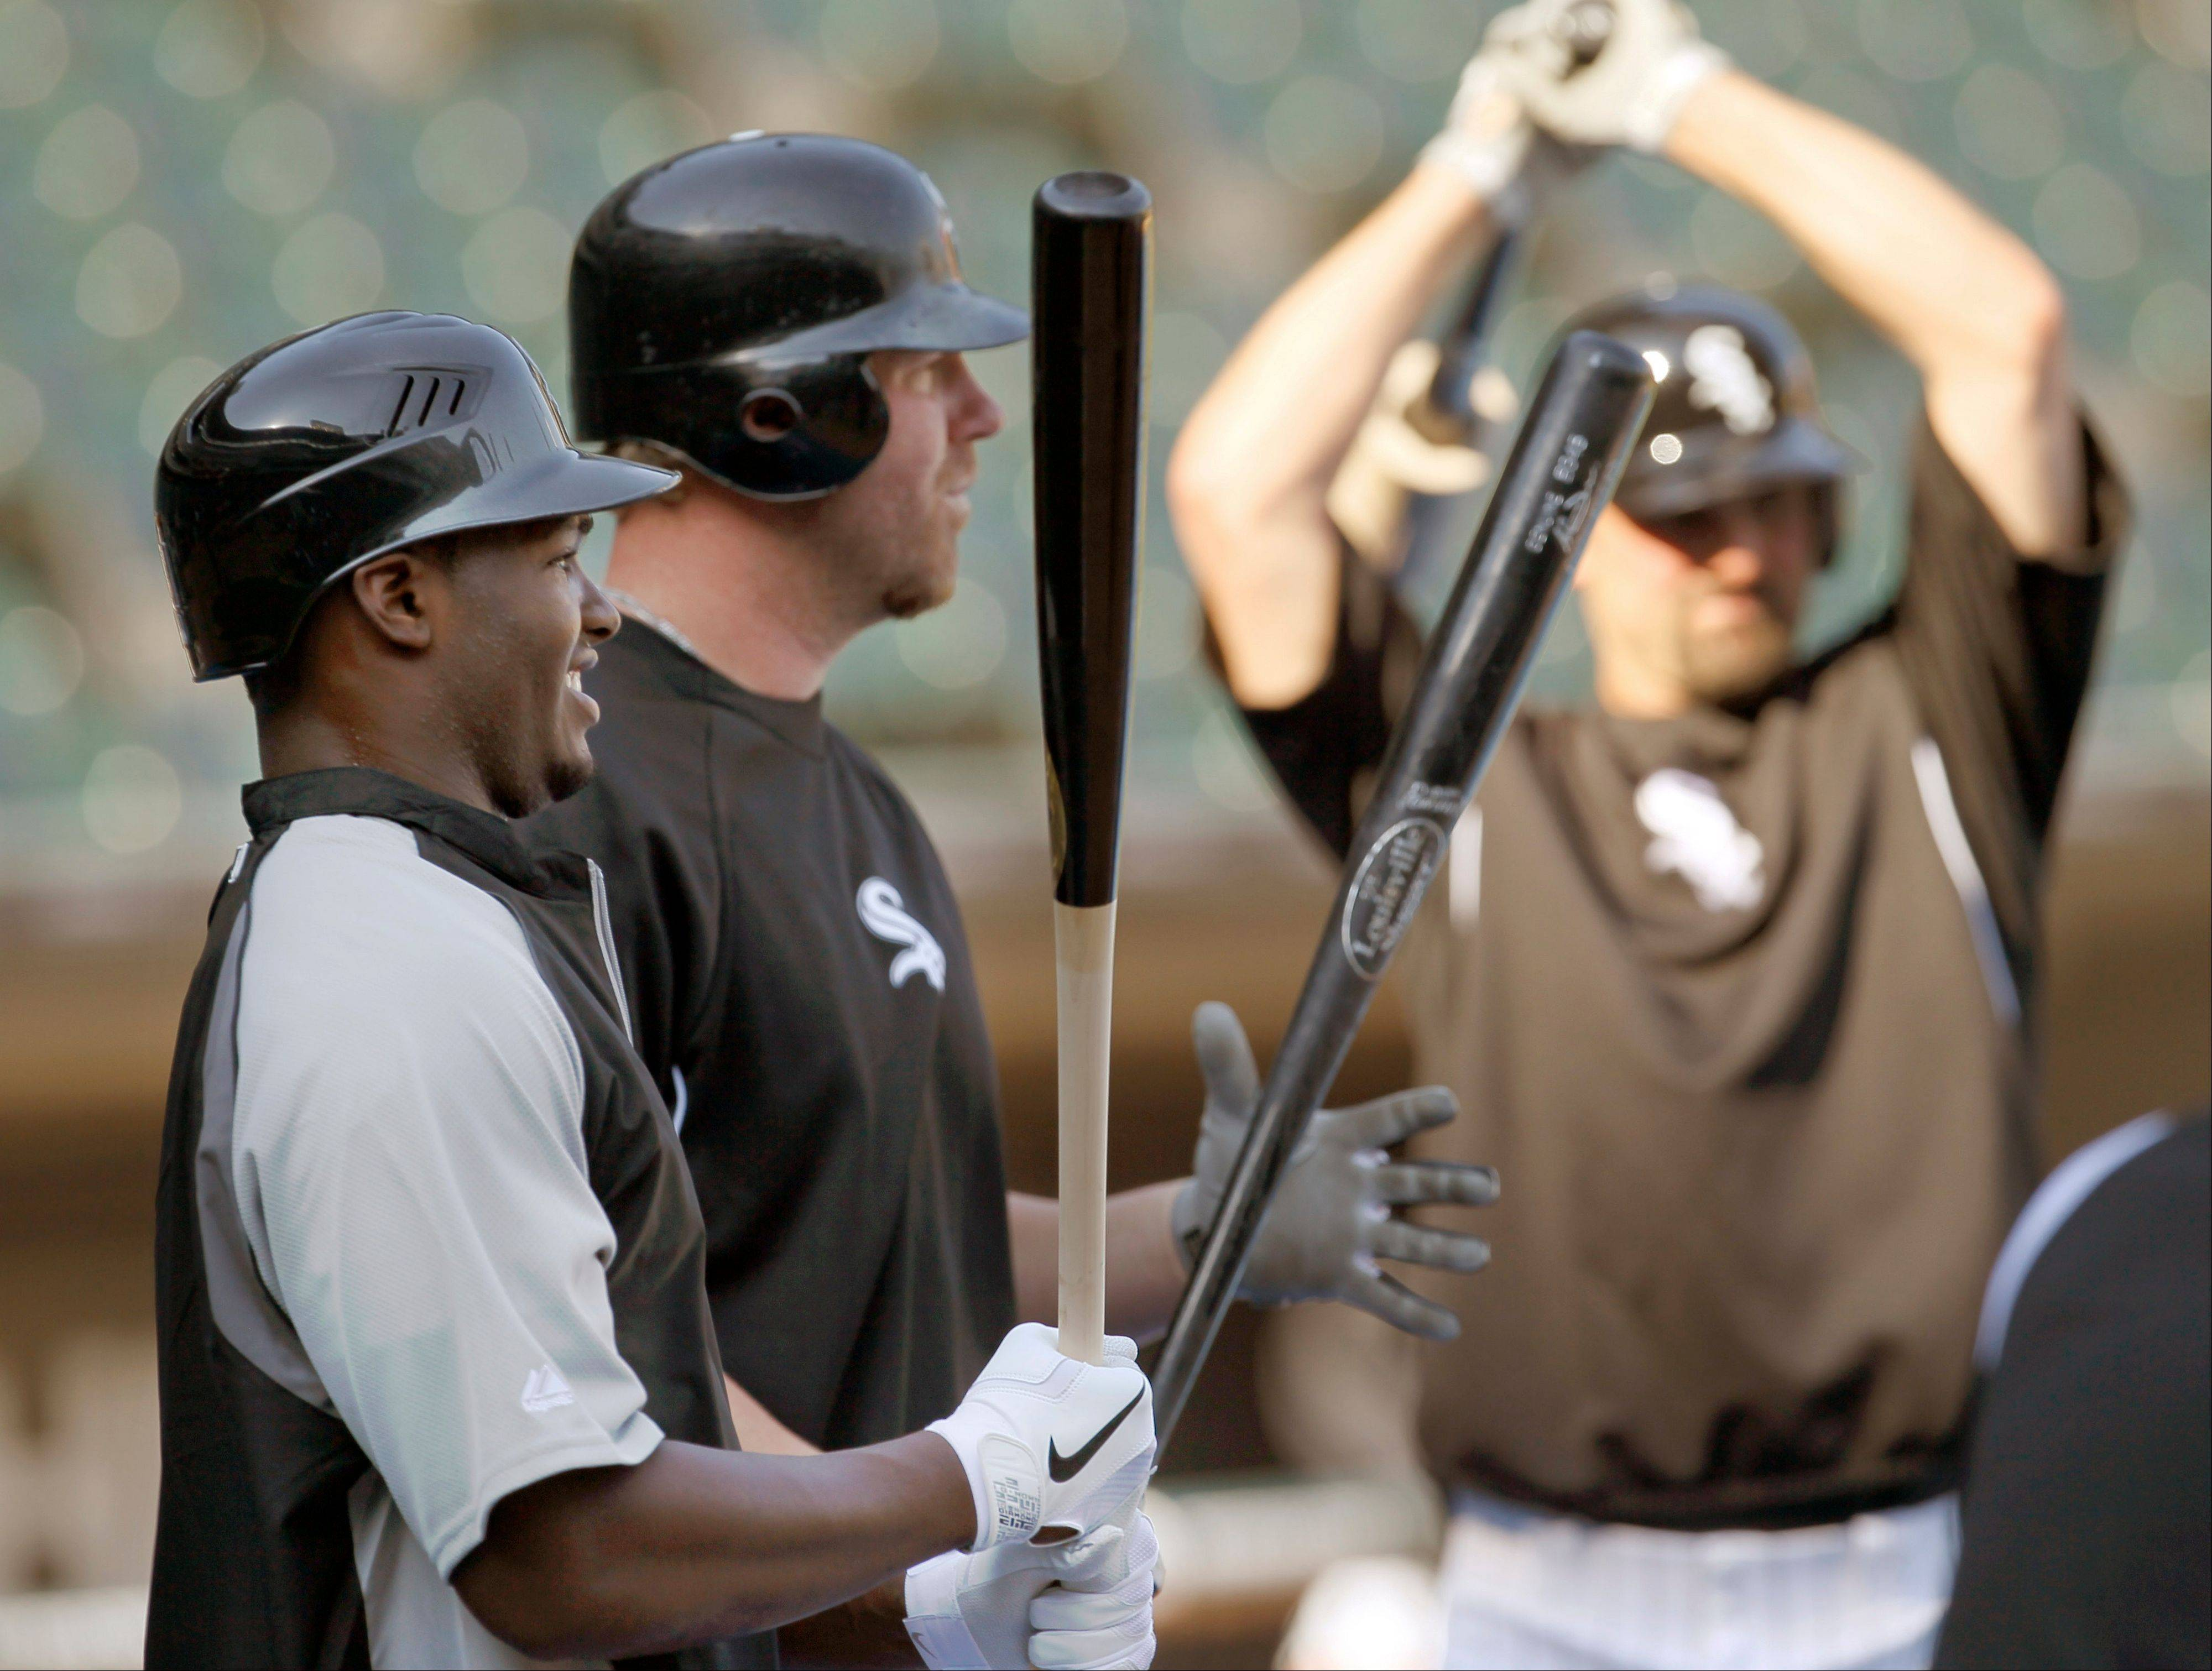 White Sox first-round draft pick outfielder Courtney Hawkins, left, from Carroll High School in Corpus Christi, Texas, stands next to Adam Dunn and Paul Konerko, as he participates in batting practice before an interleague baseball game against the Cubs on Monday.